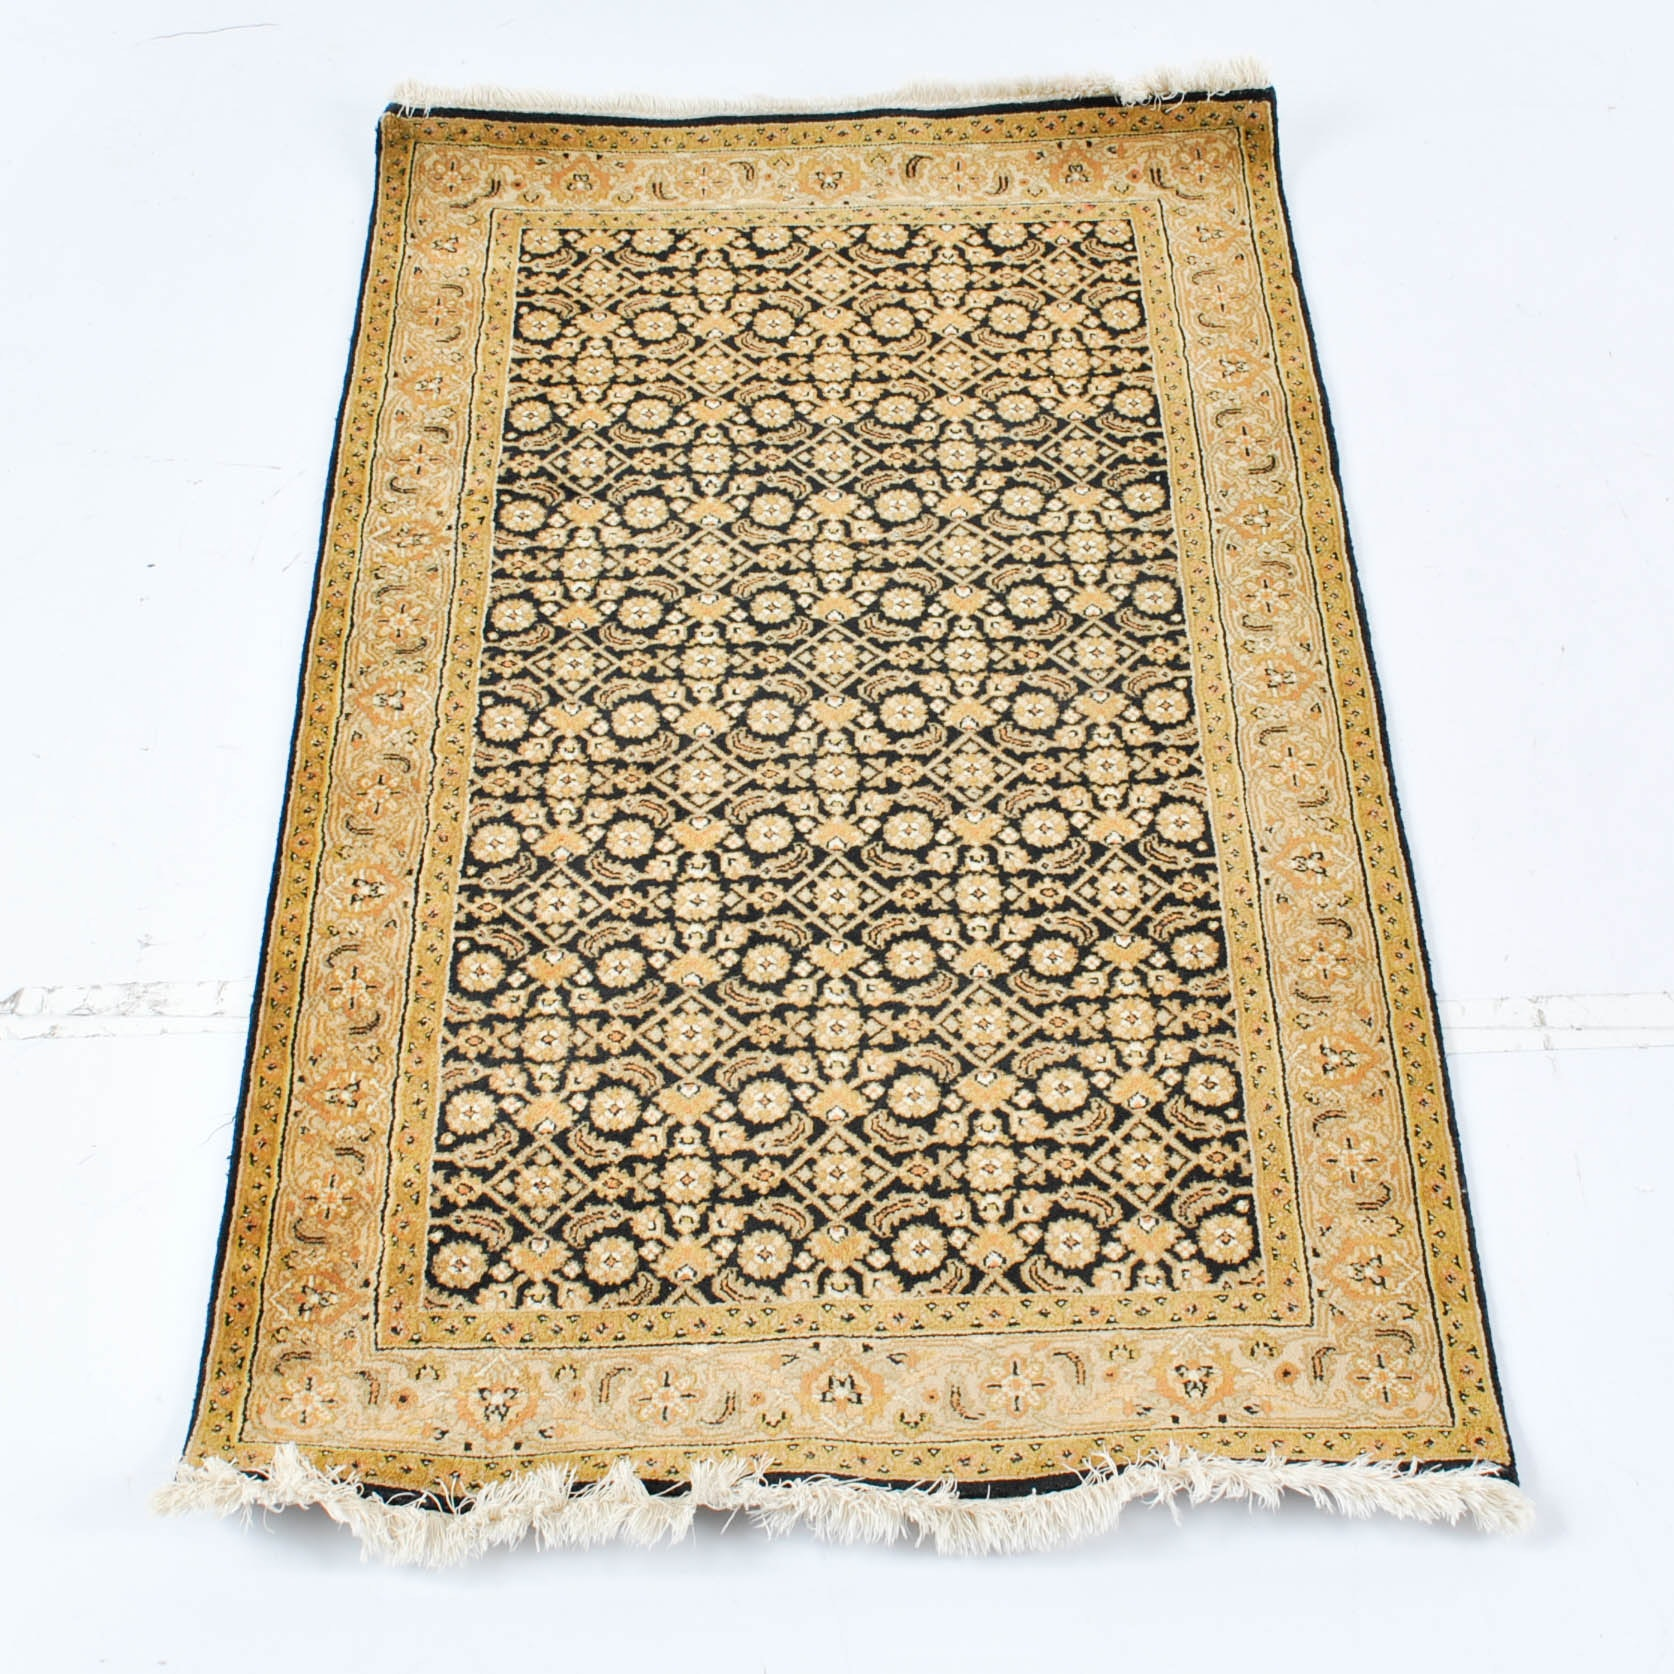 Hand-Knotted Indo-Persian Herati Wool Accent Rug